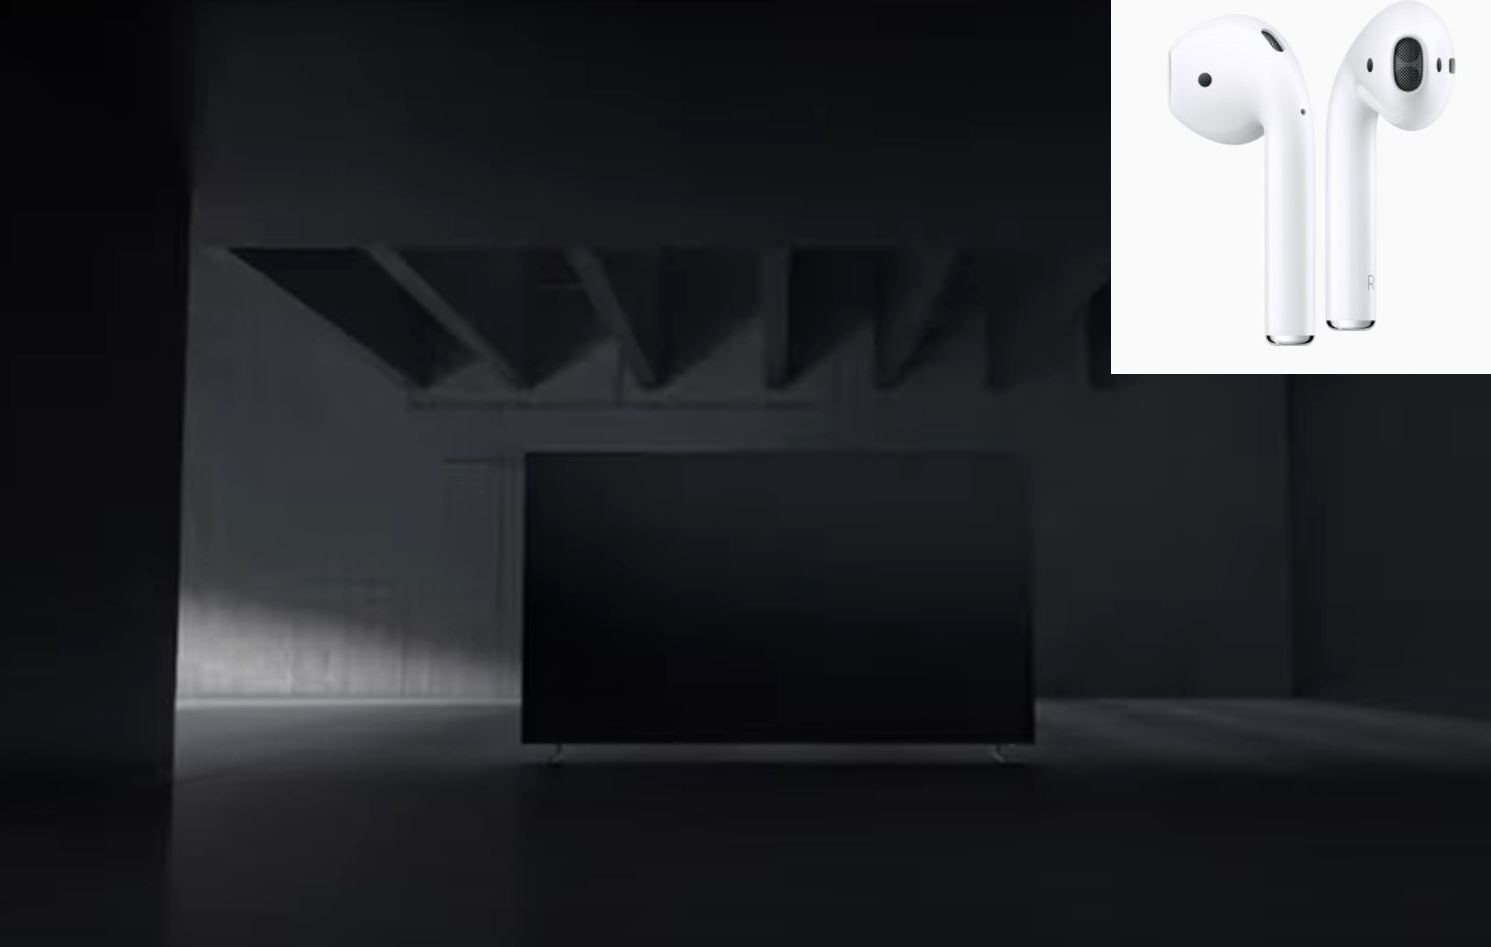 Can Samsung TV Connect to Airpods